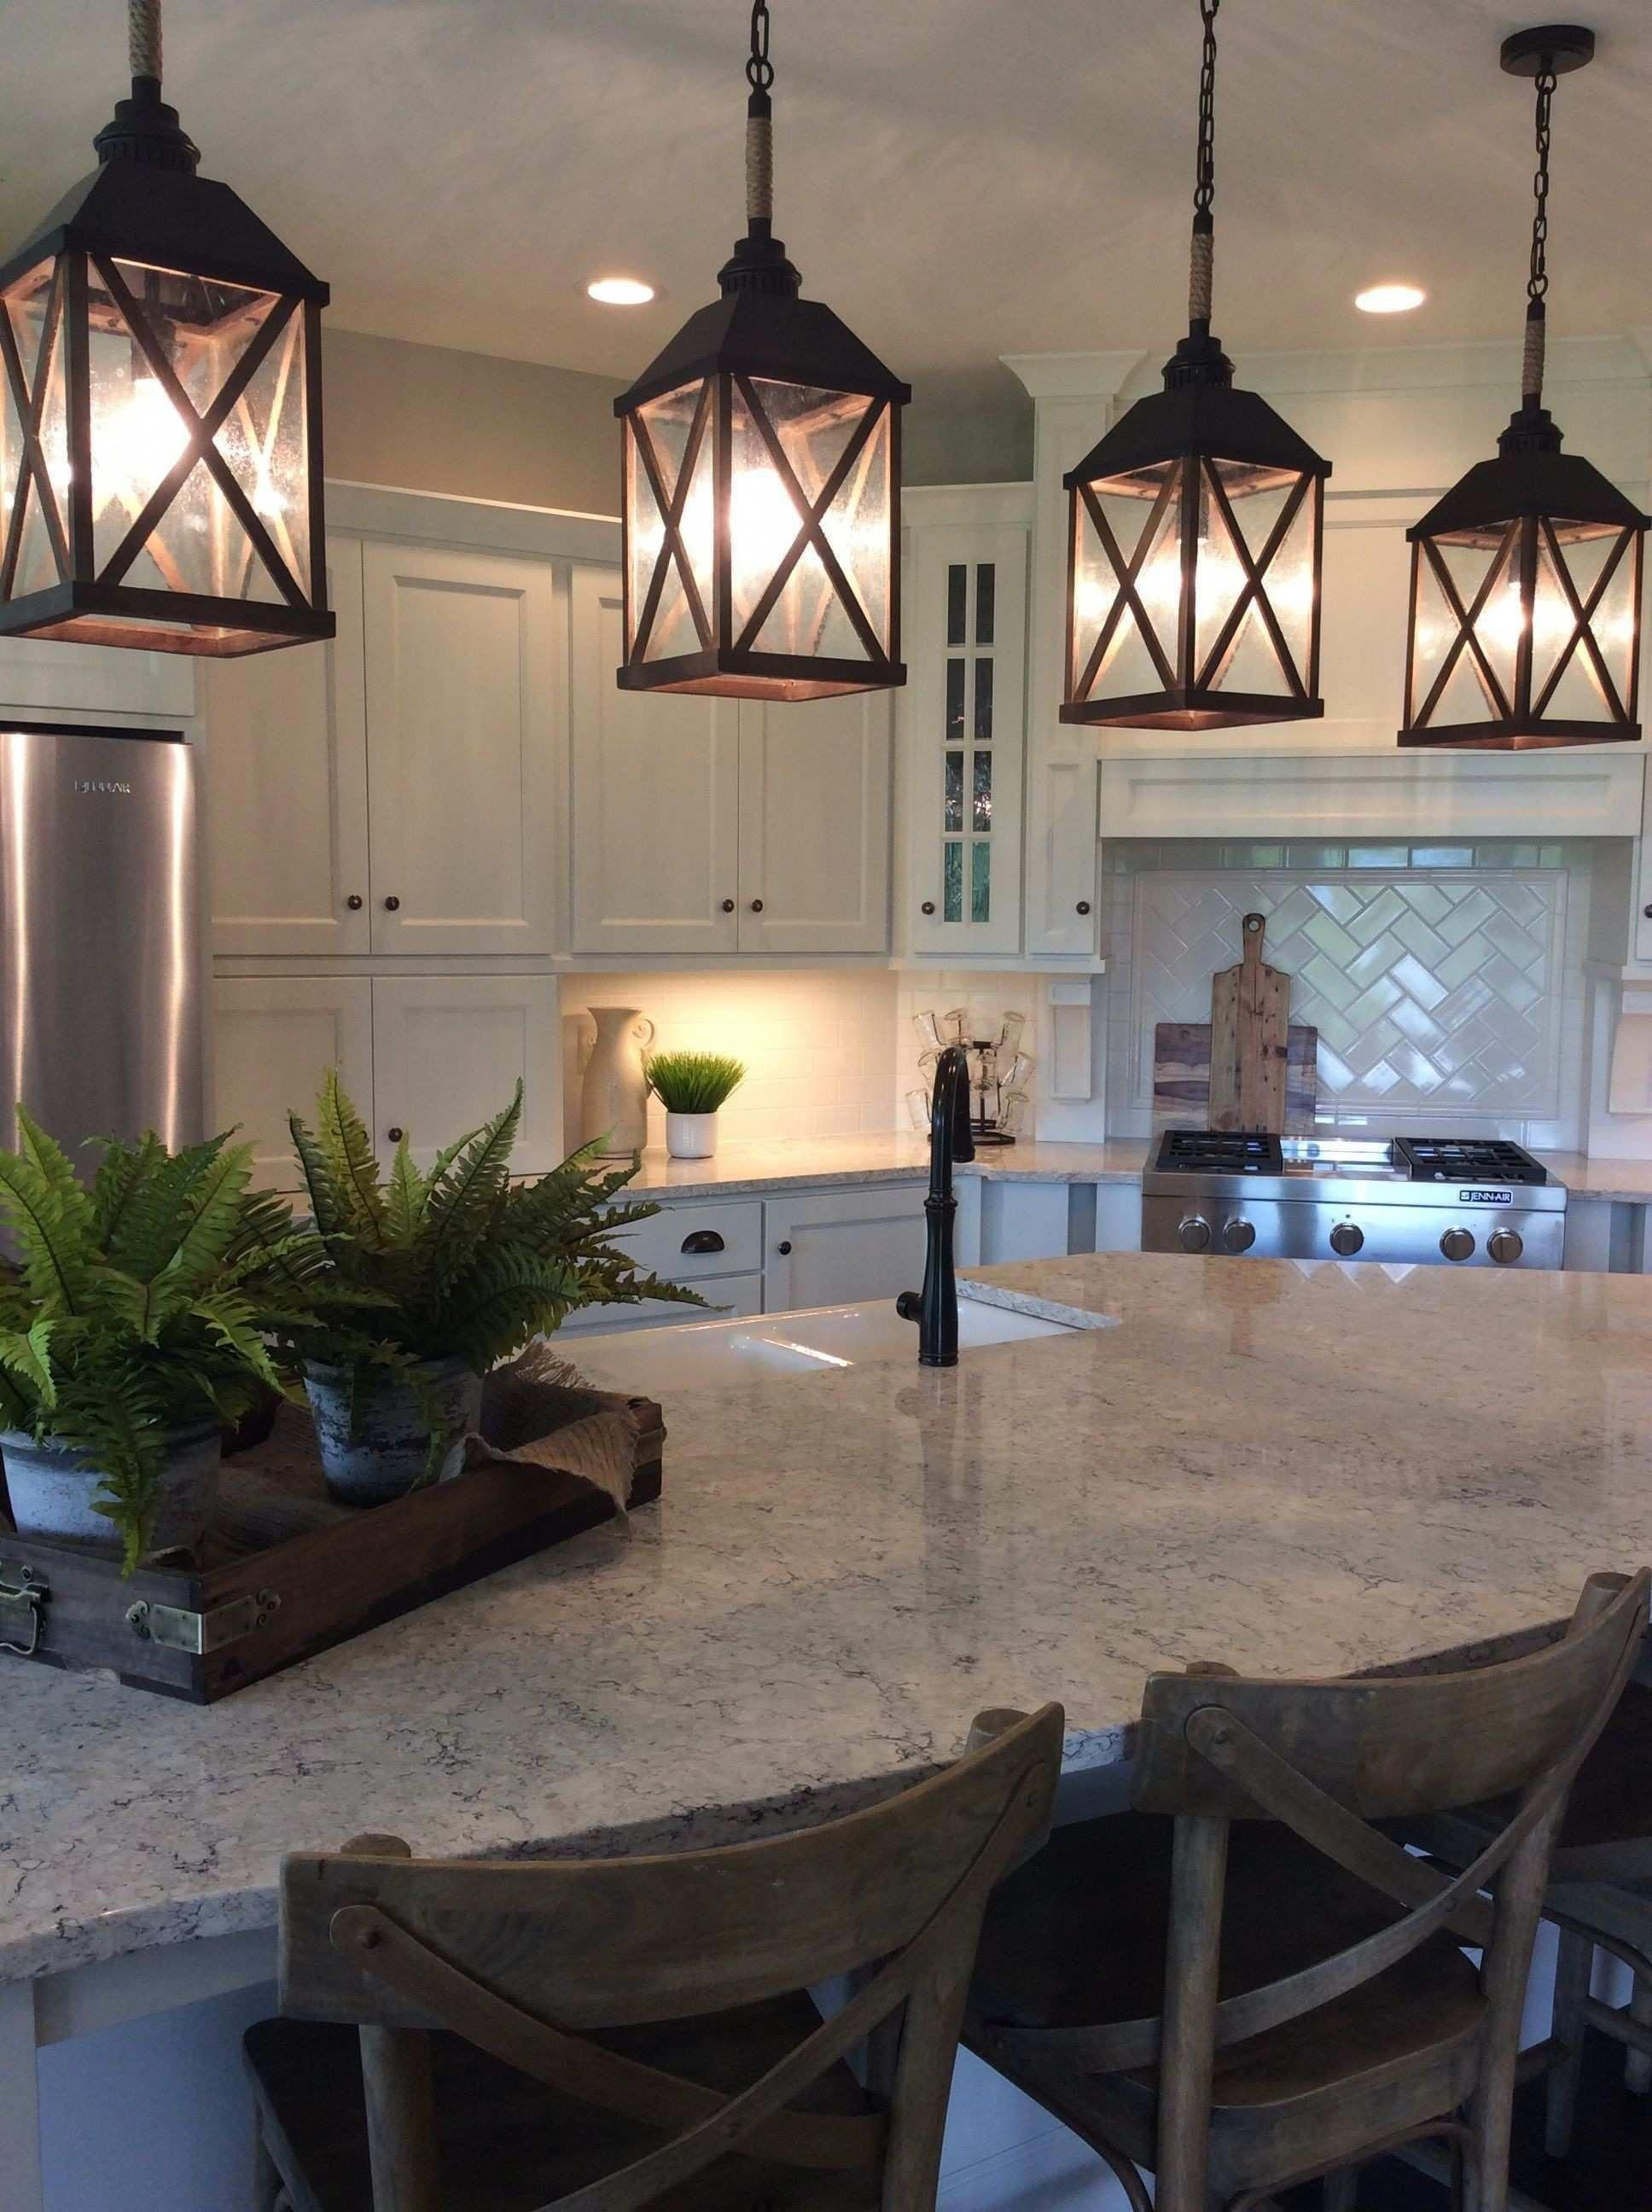 Find And Save Inspiration About Kitchen Island Designs Ideas On